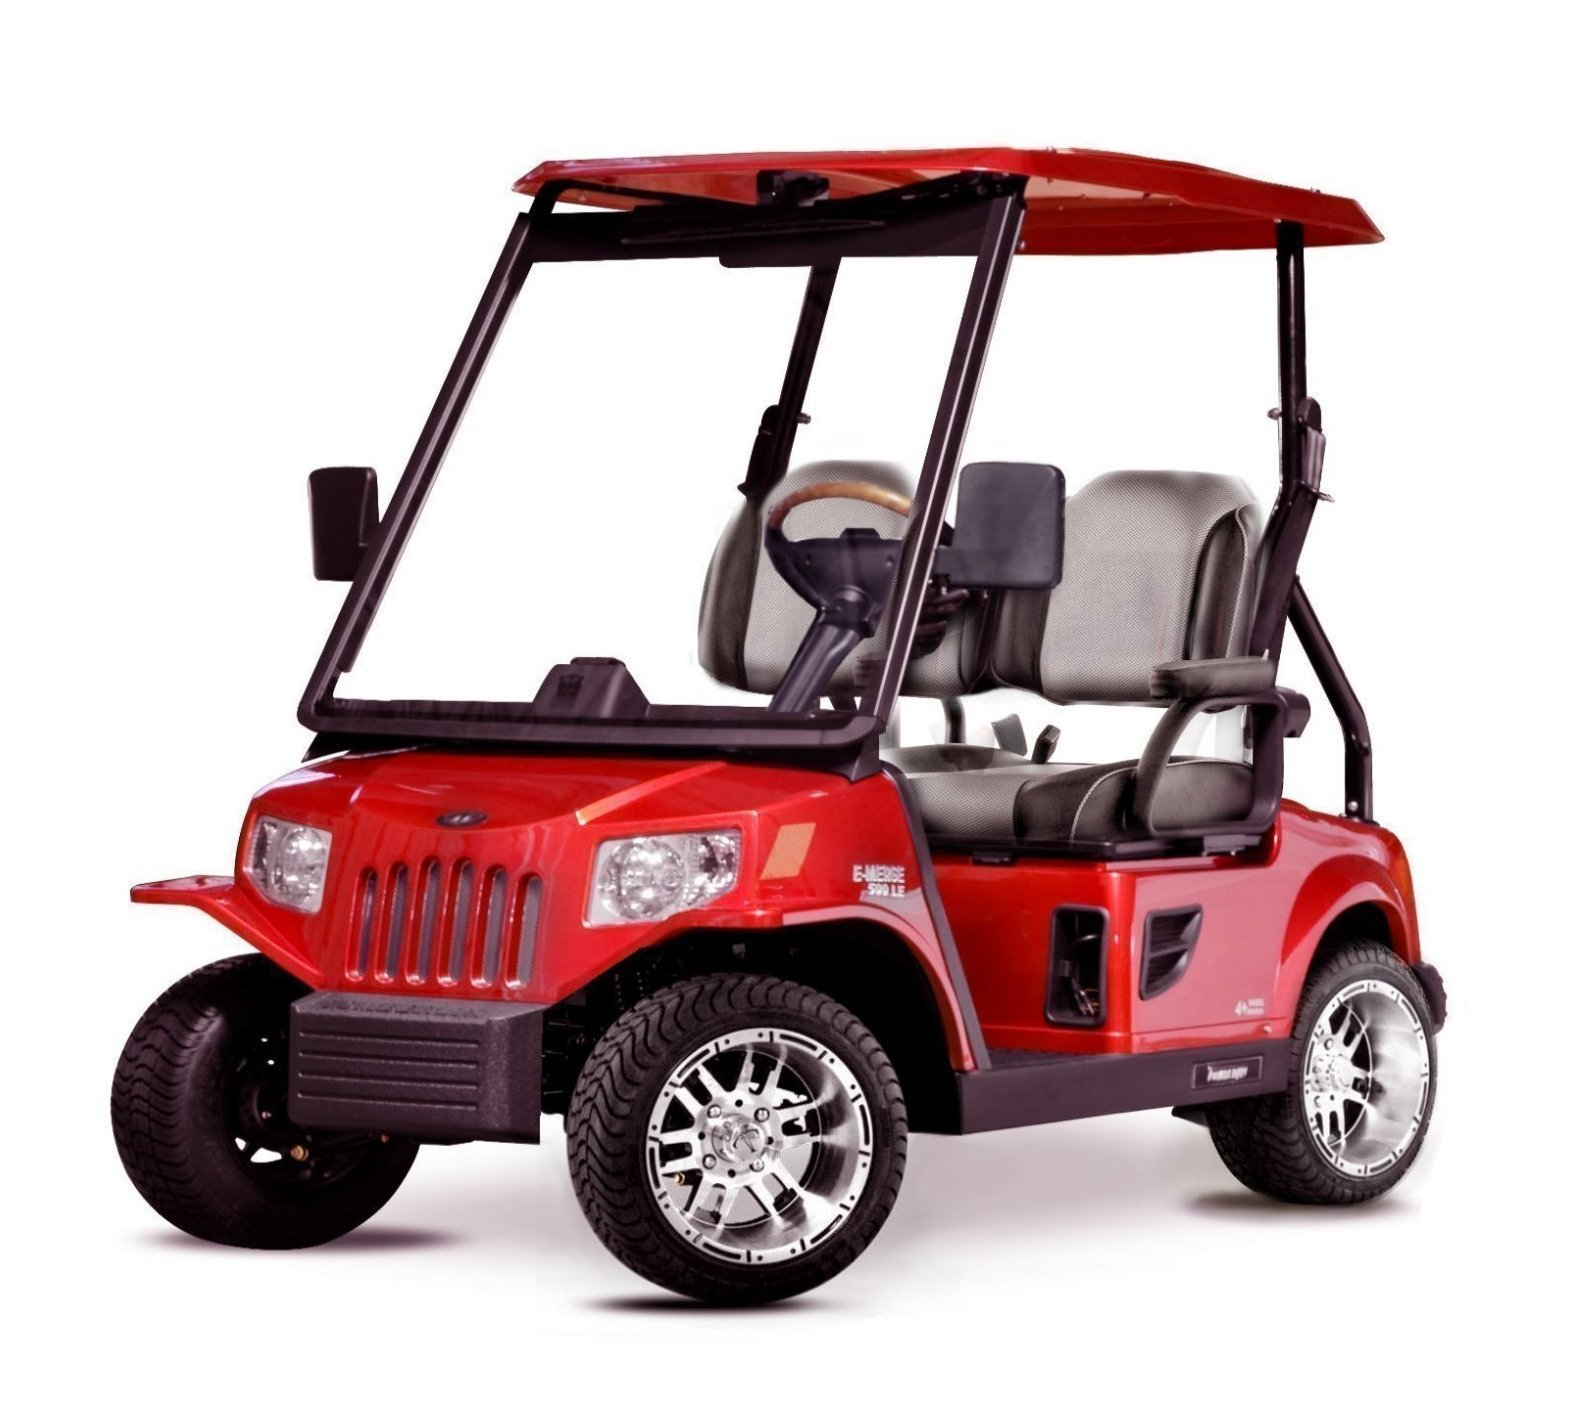 Wildar Golf Carts and Trailers image 14